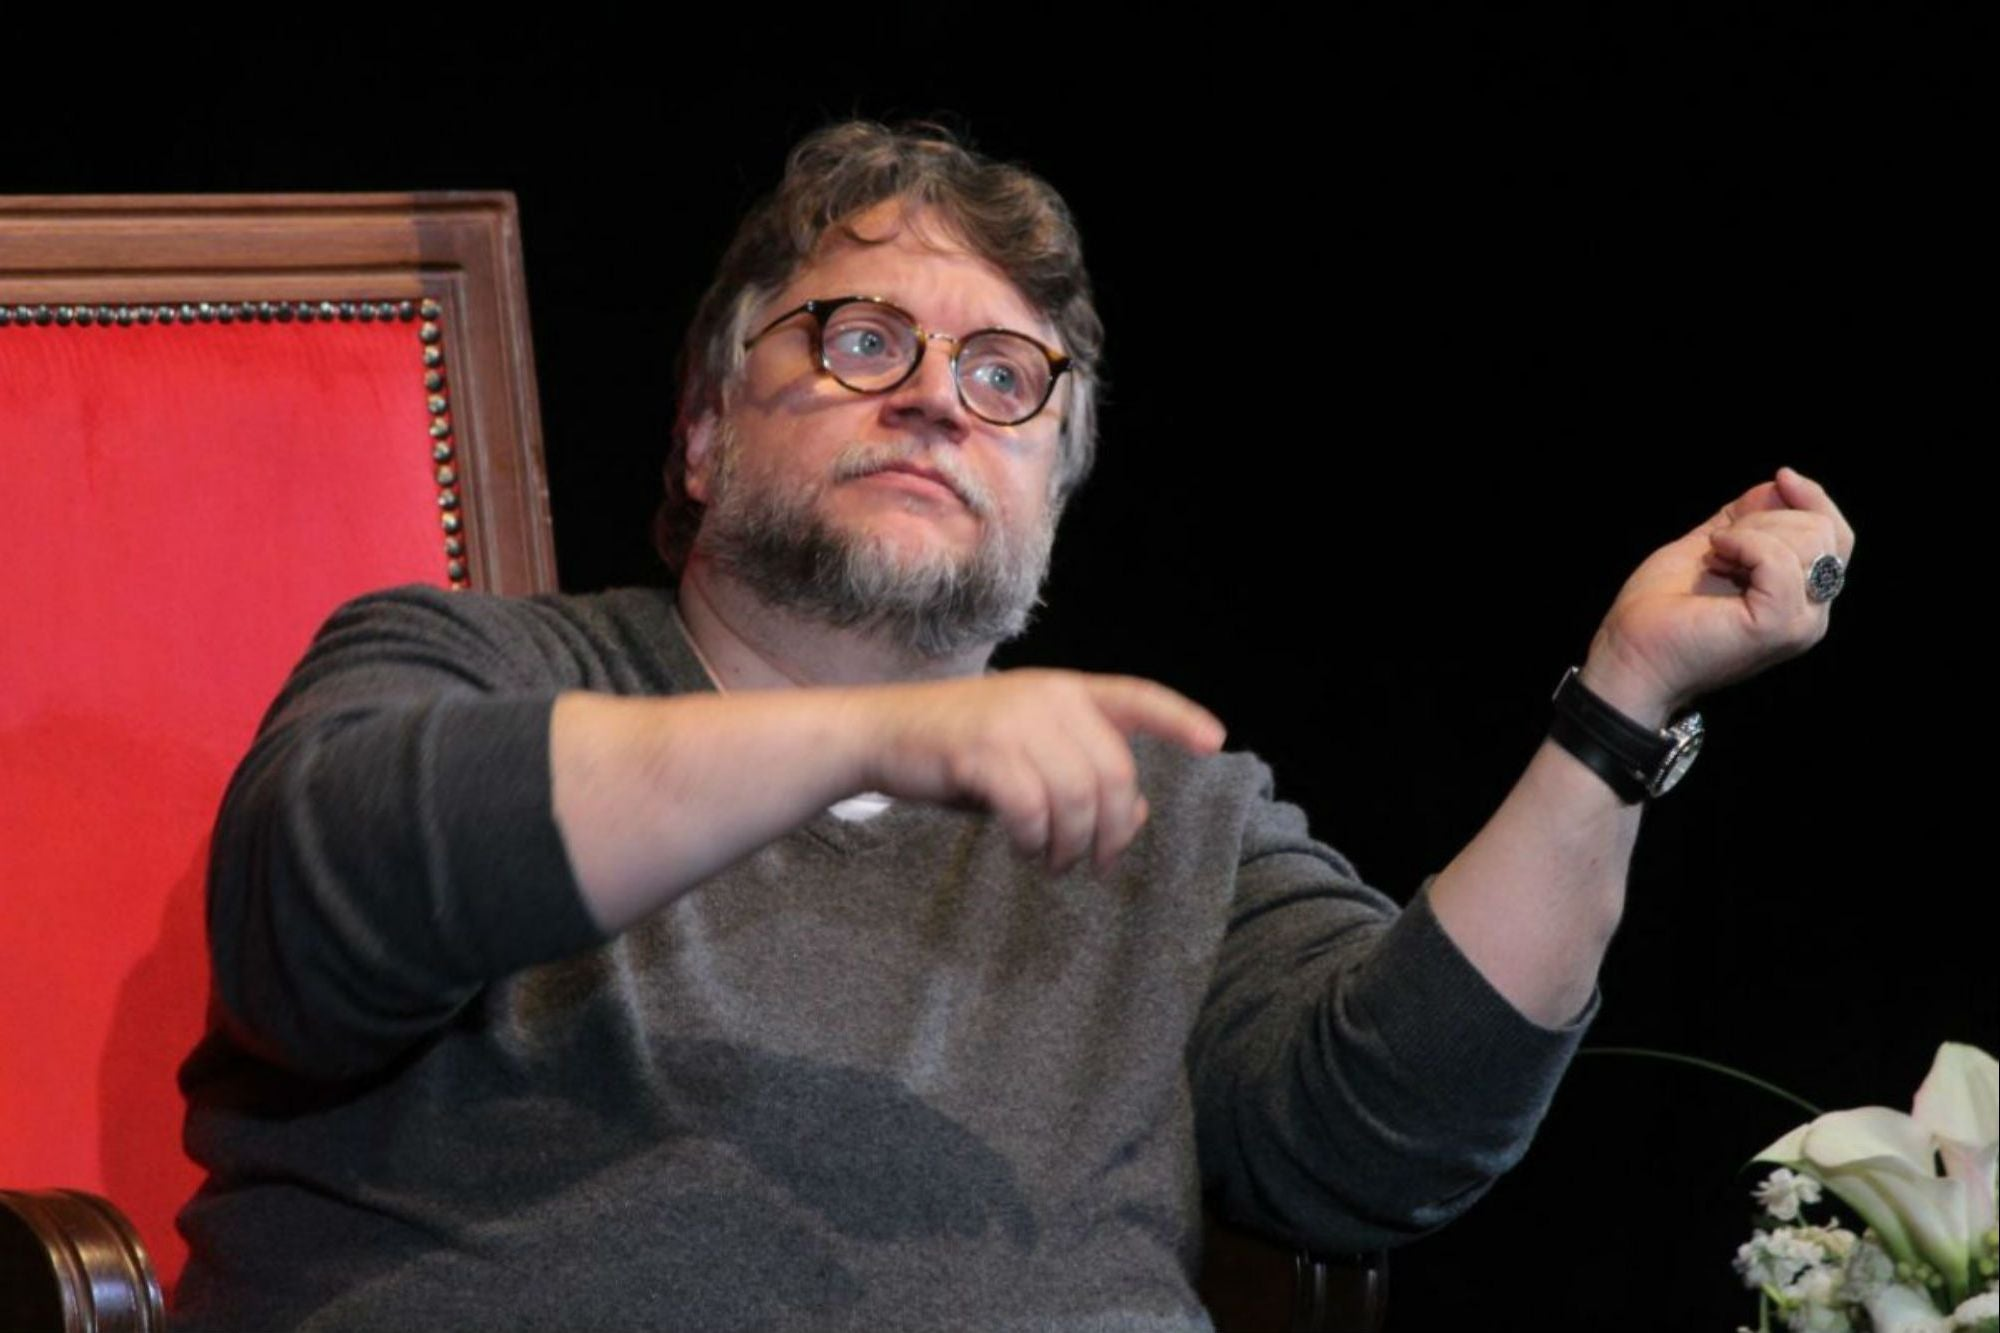 10 phrases by Guillermo del Toro to love your rarity and inspire you to succeed